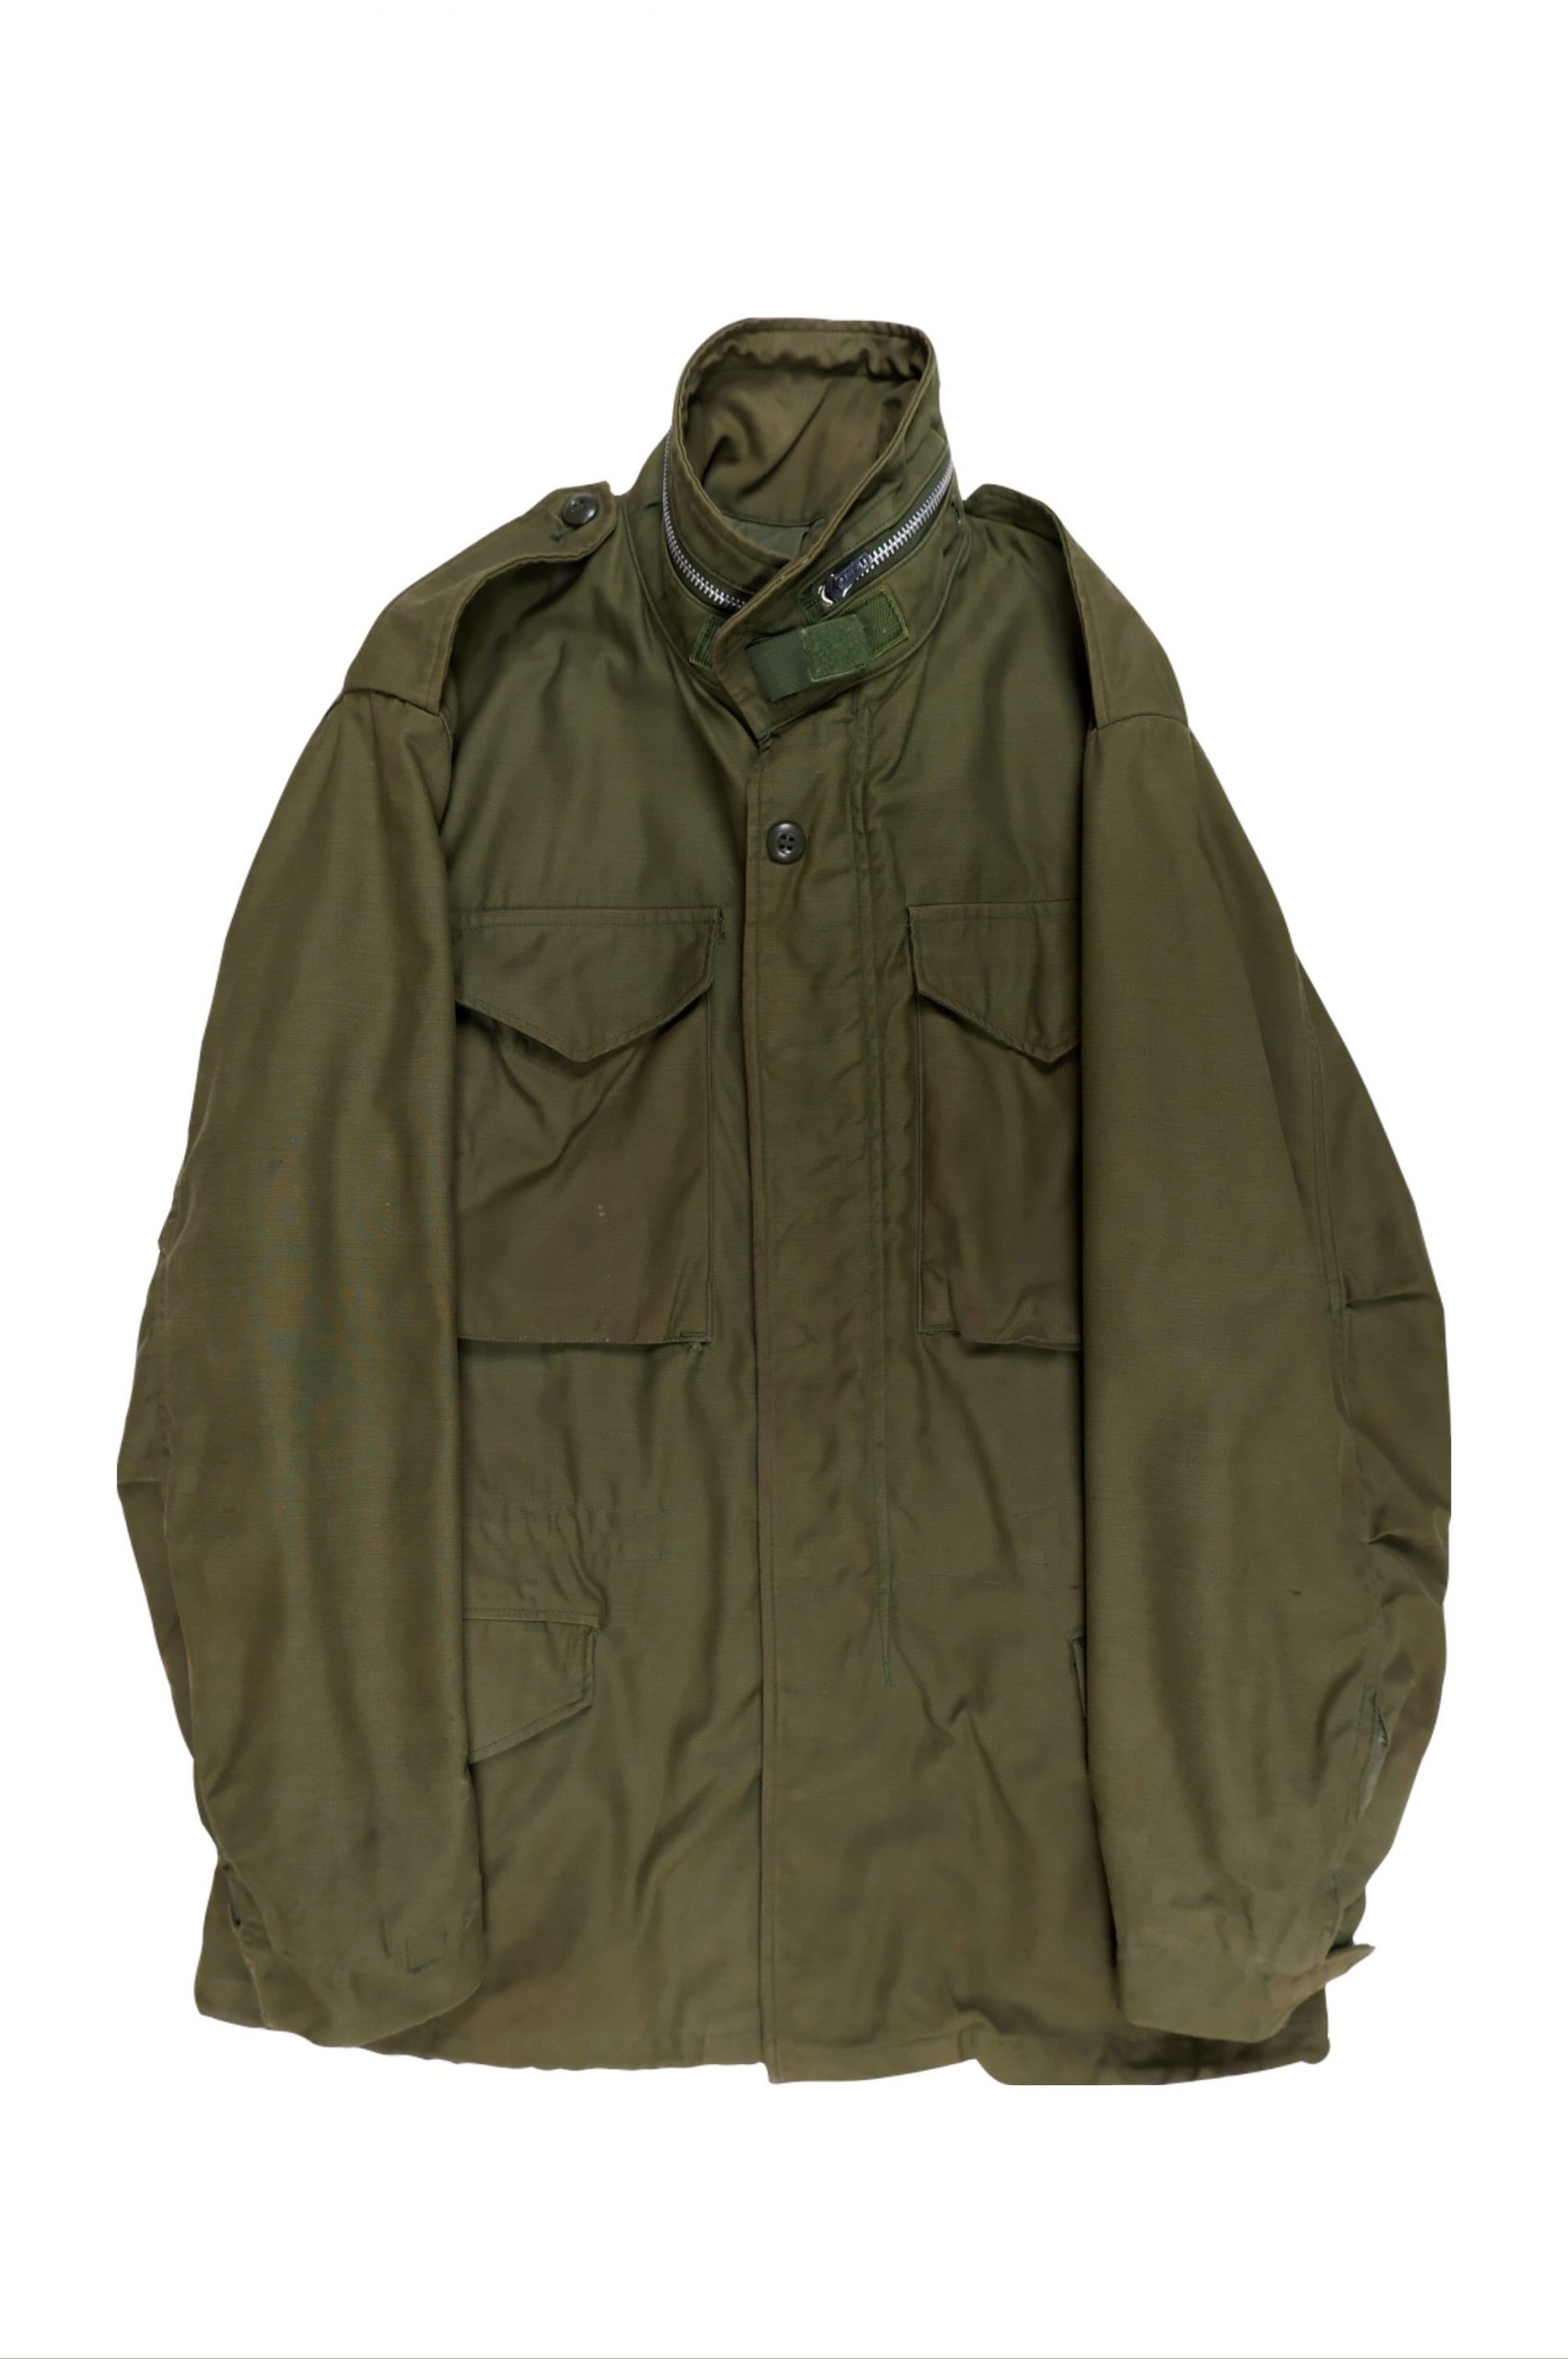 M65 MILITARY JACKET 2nd model_B